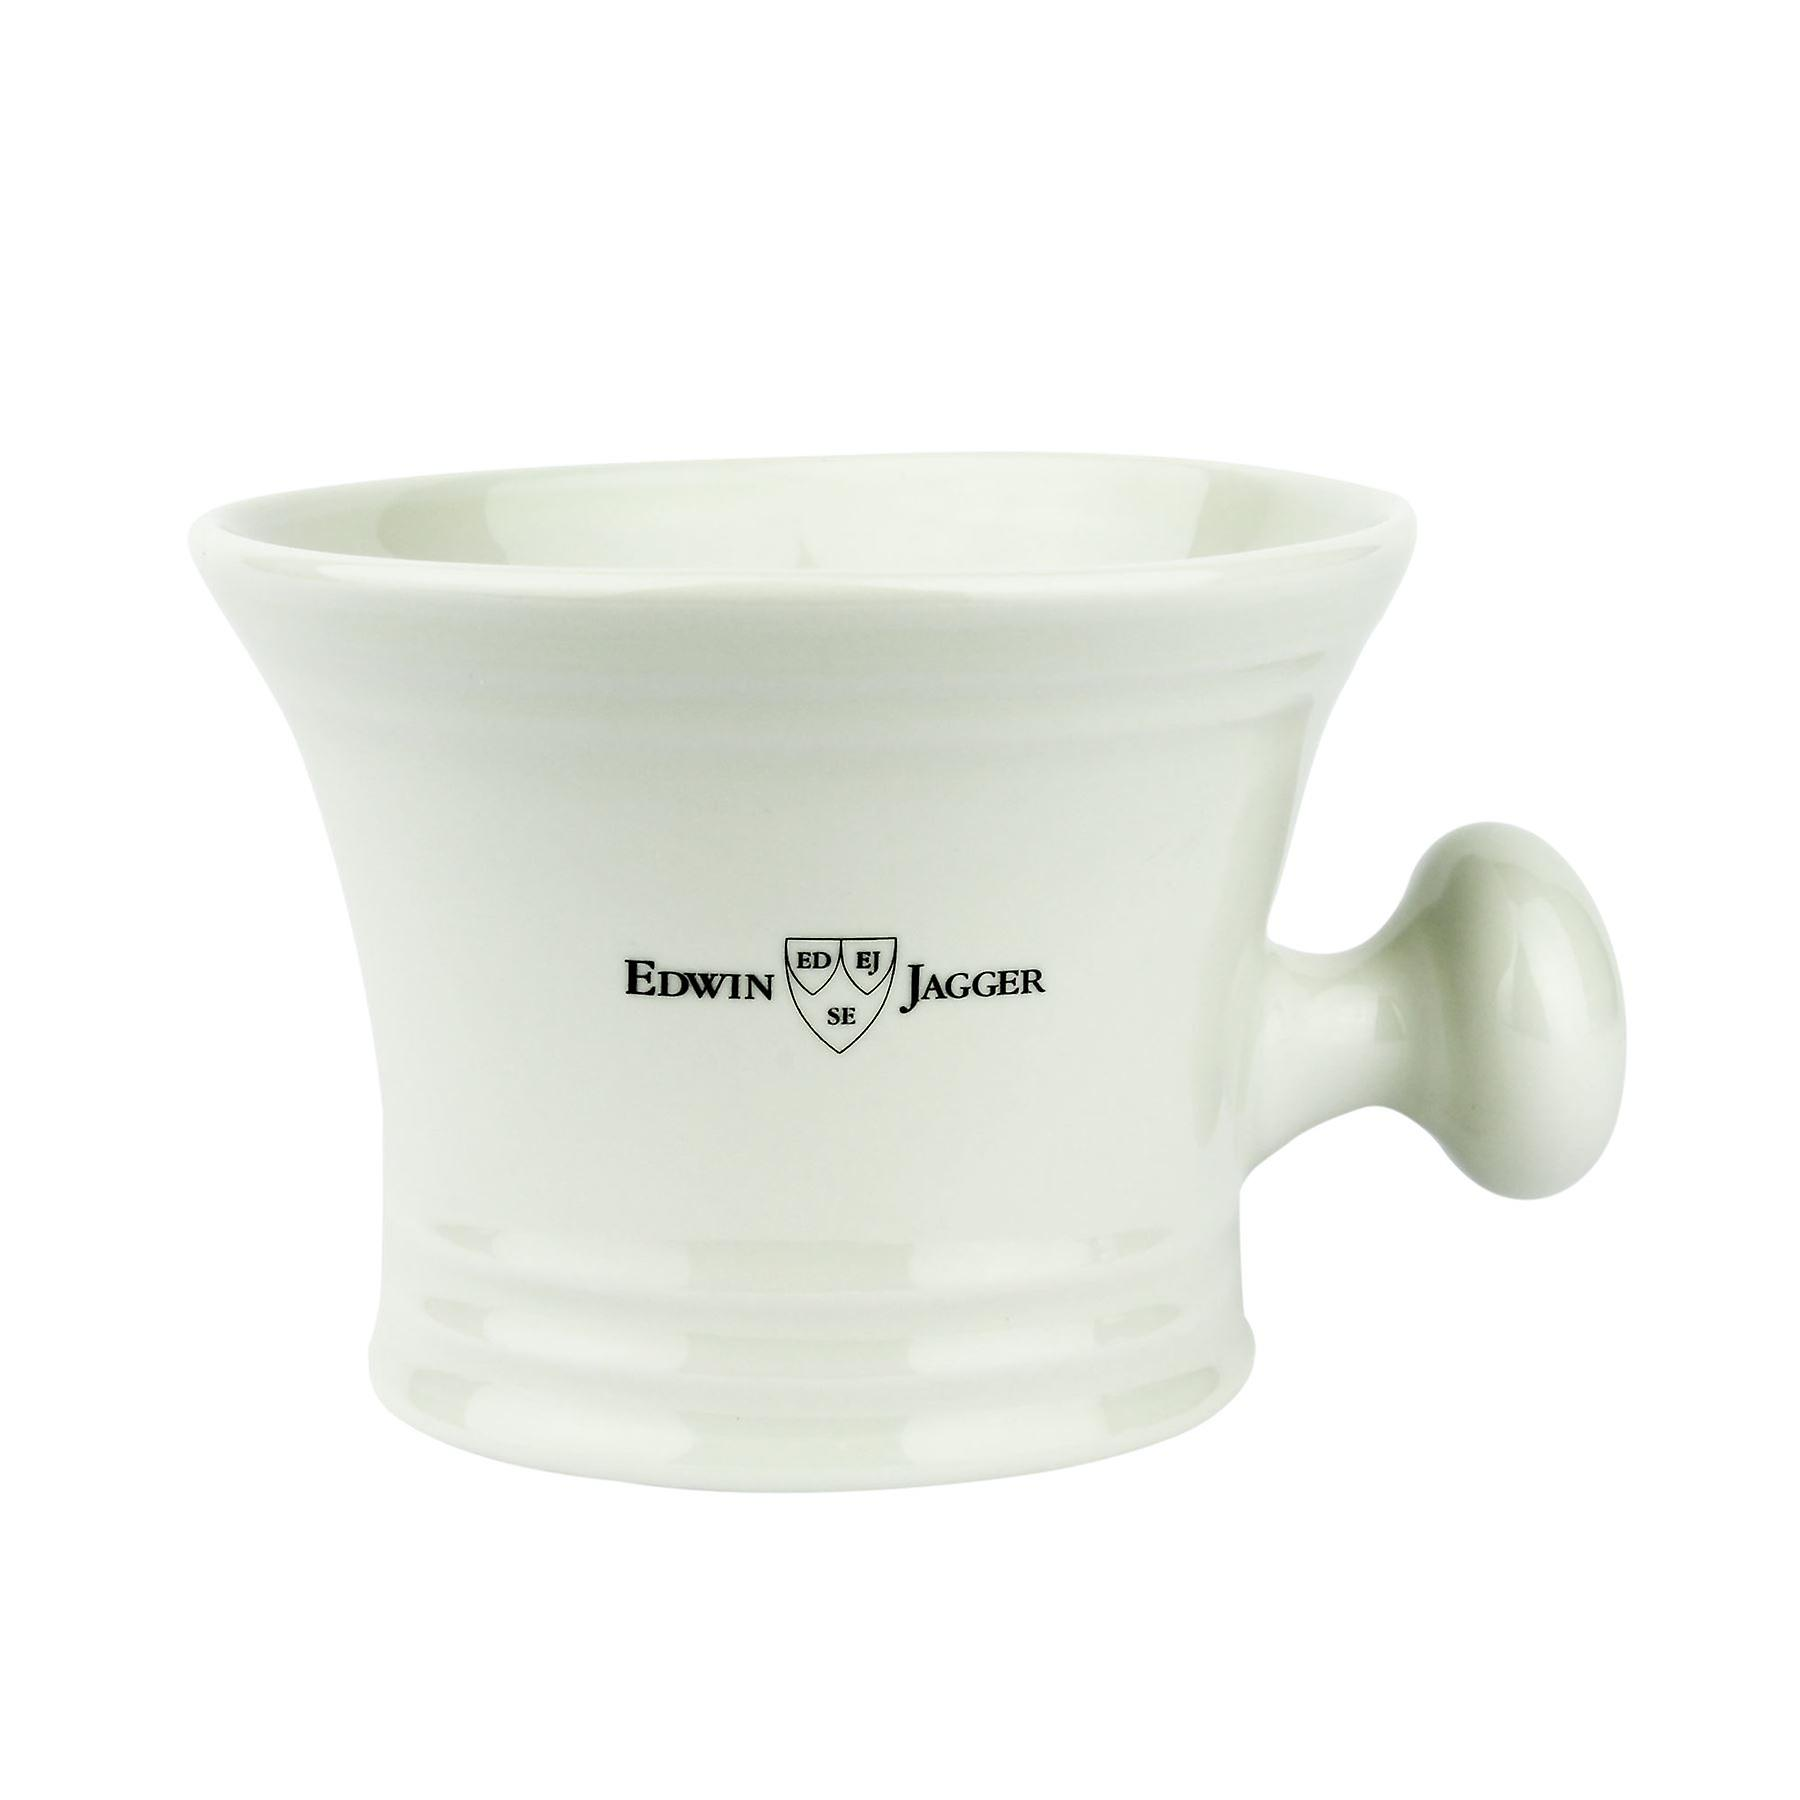 Edwin Jagger Ivory Porcelain Shaving Bowl with Handle RN47